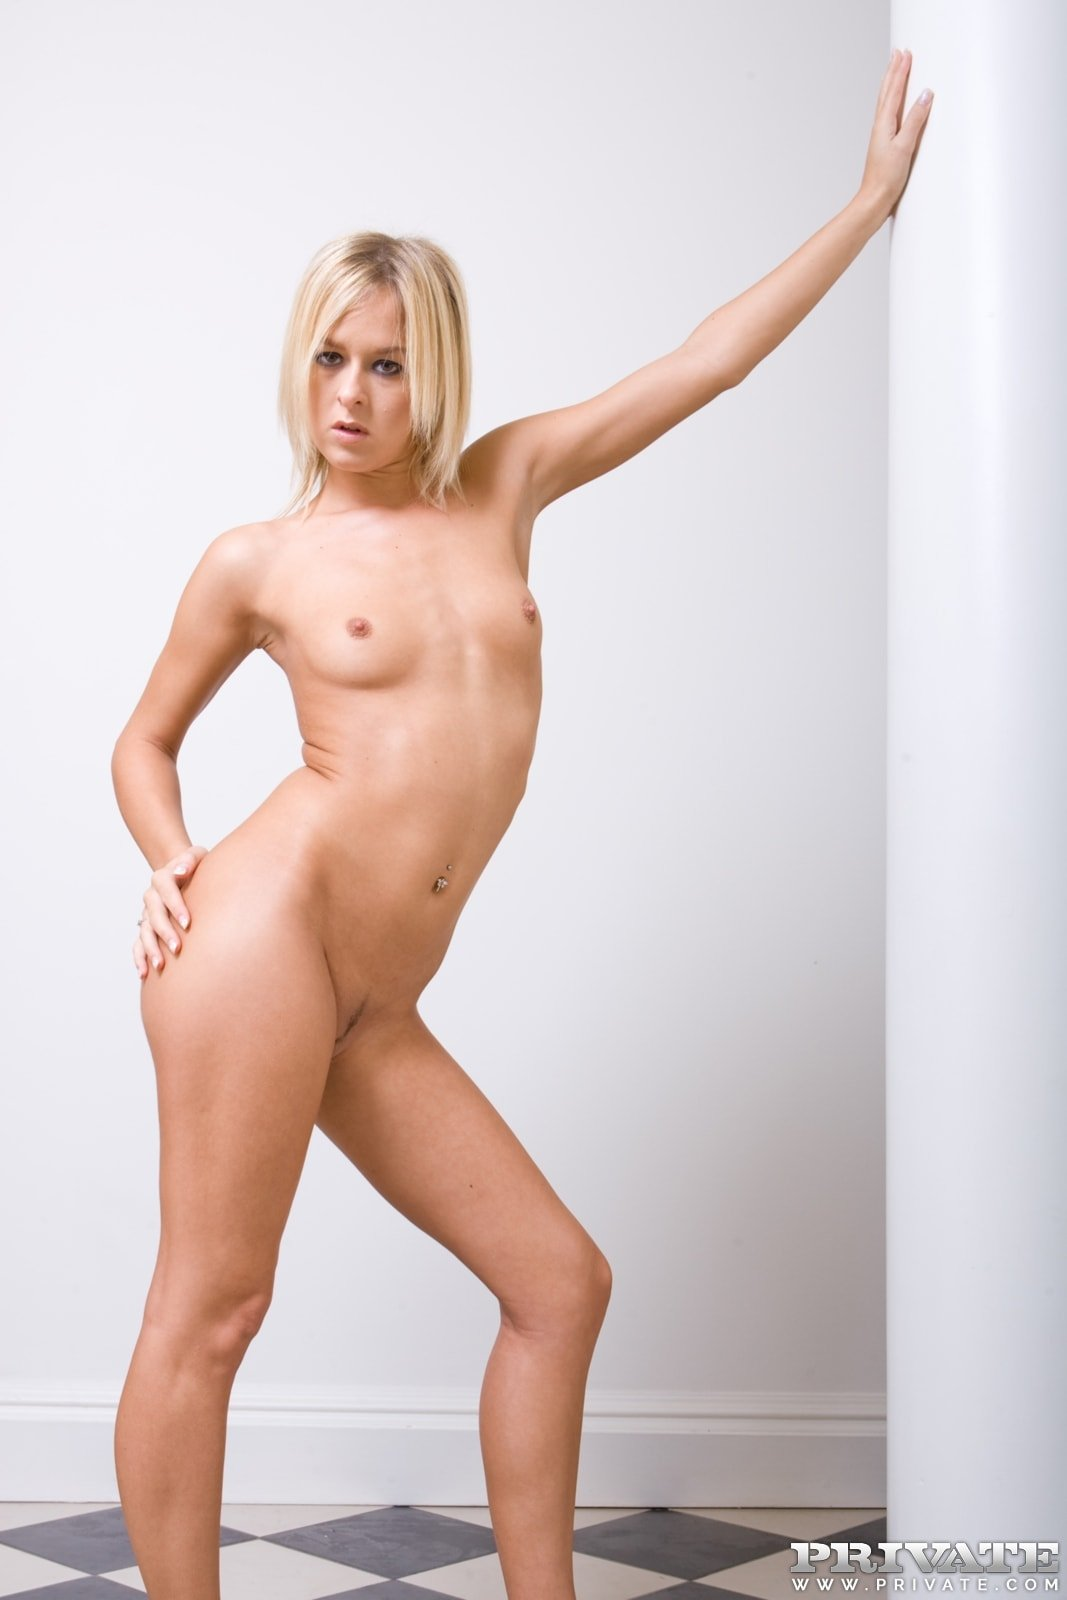 Fucking my black wife Ametures first timers year olds coed lesbian pics